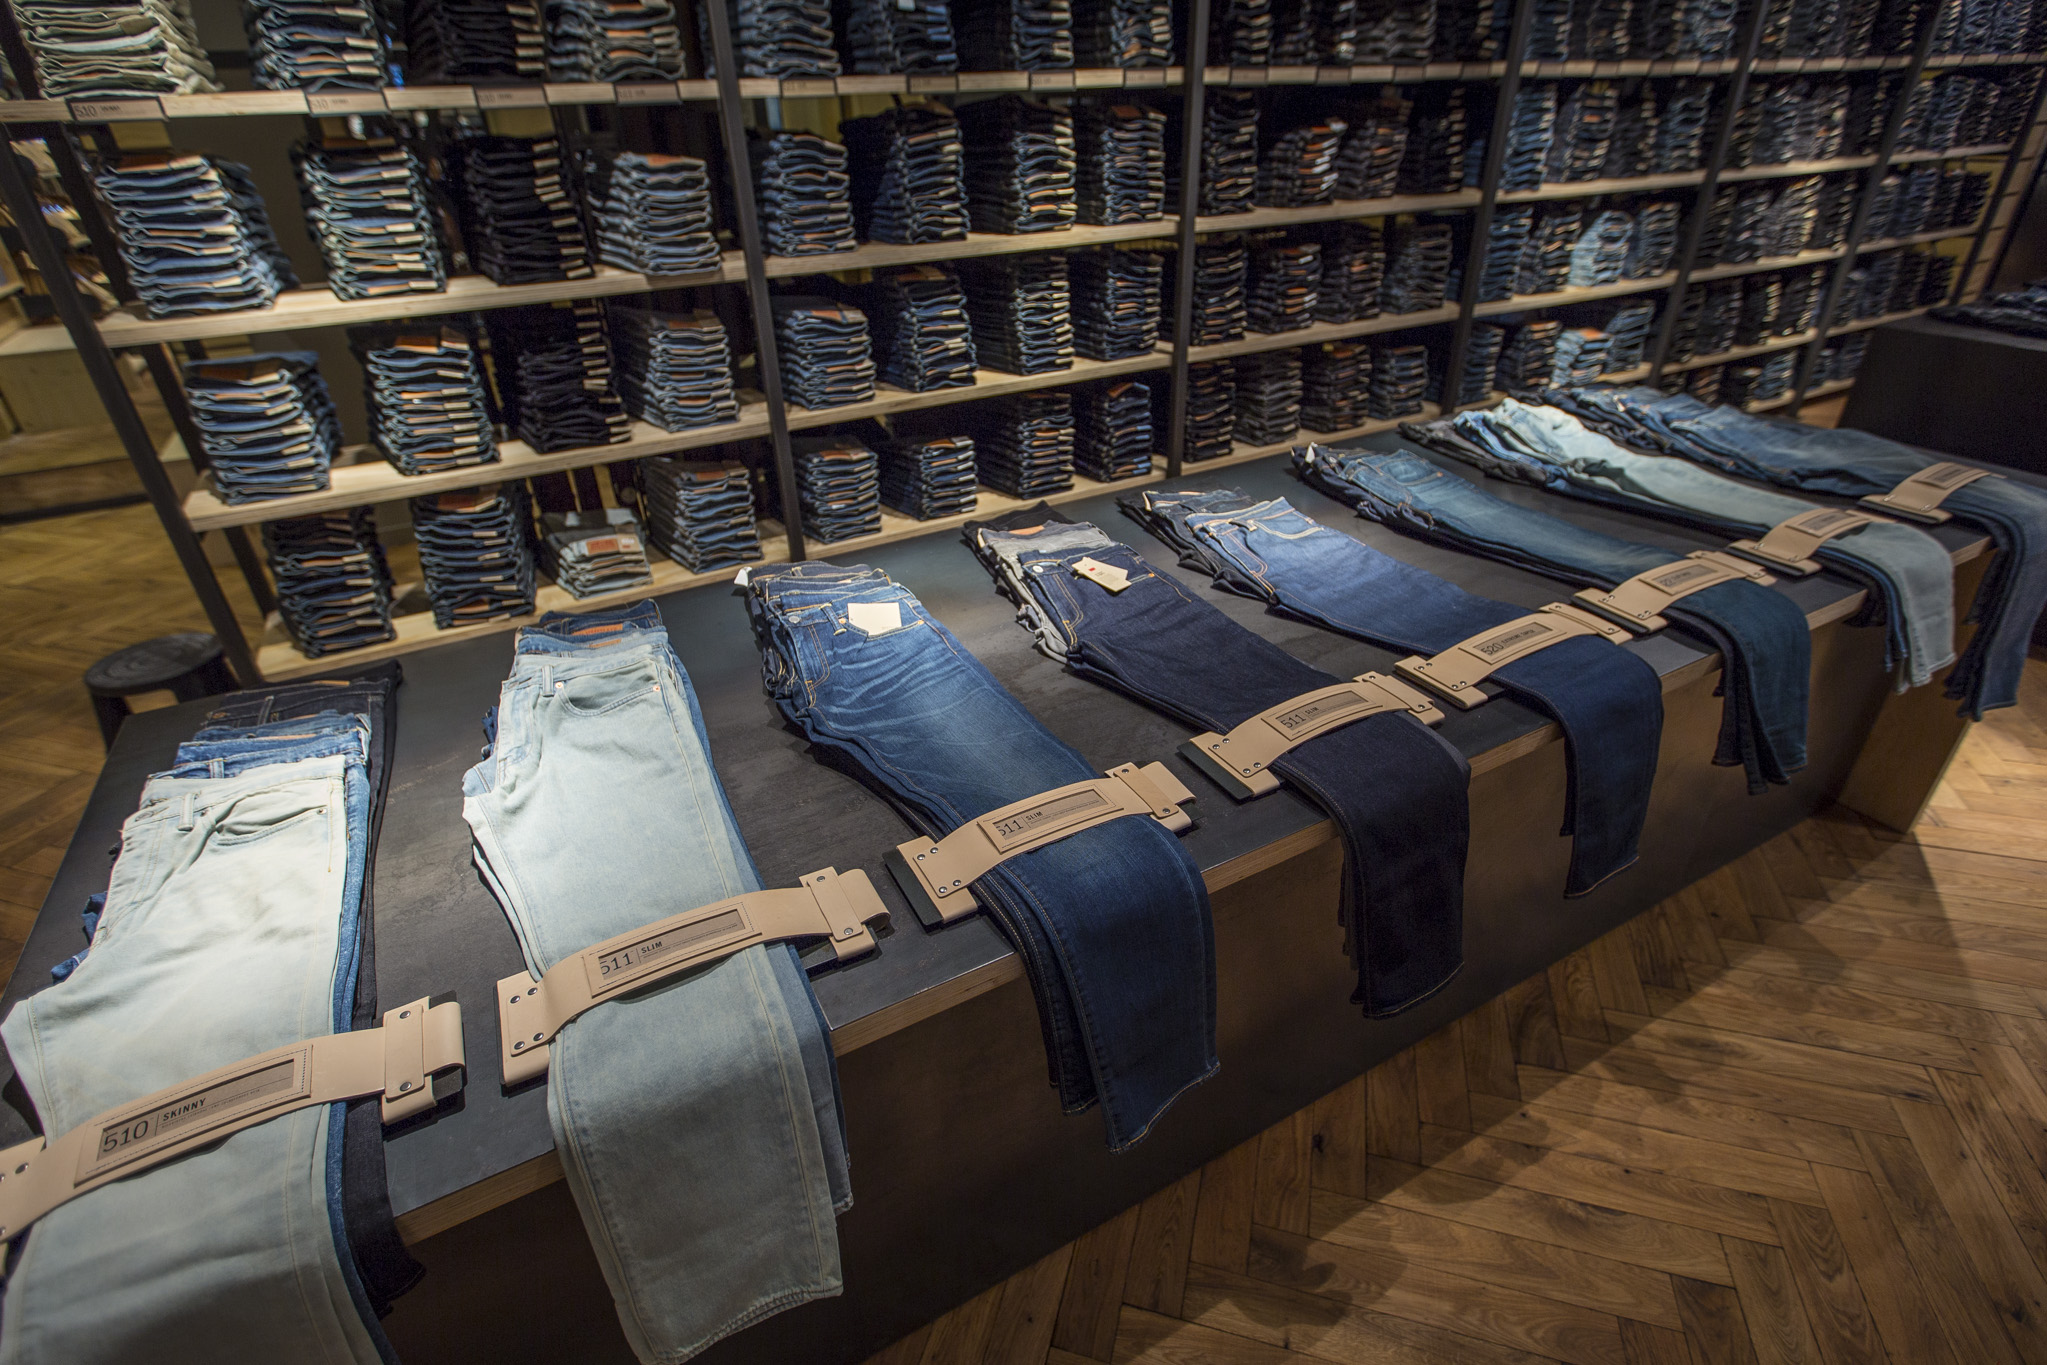 Step Renovated Store Berlin Levi's The Inside TrwqxT1